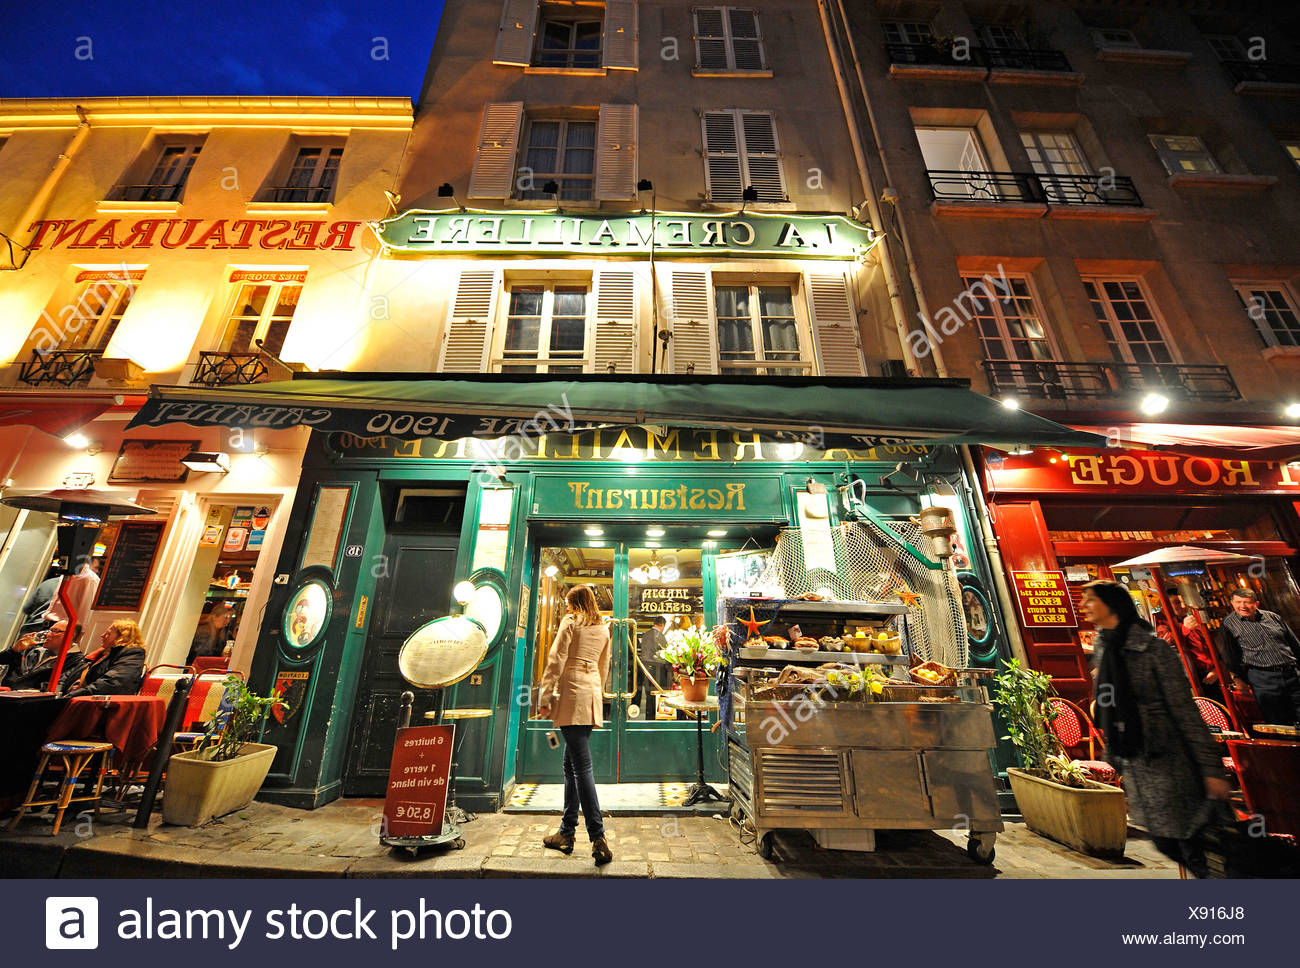 France Paris Montmartre District Restaurant Stock Photos France